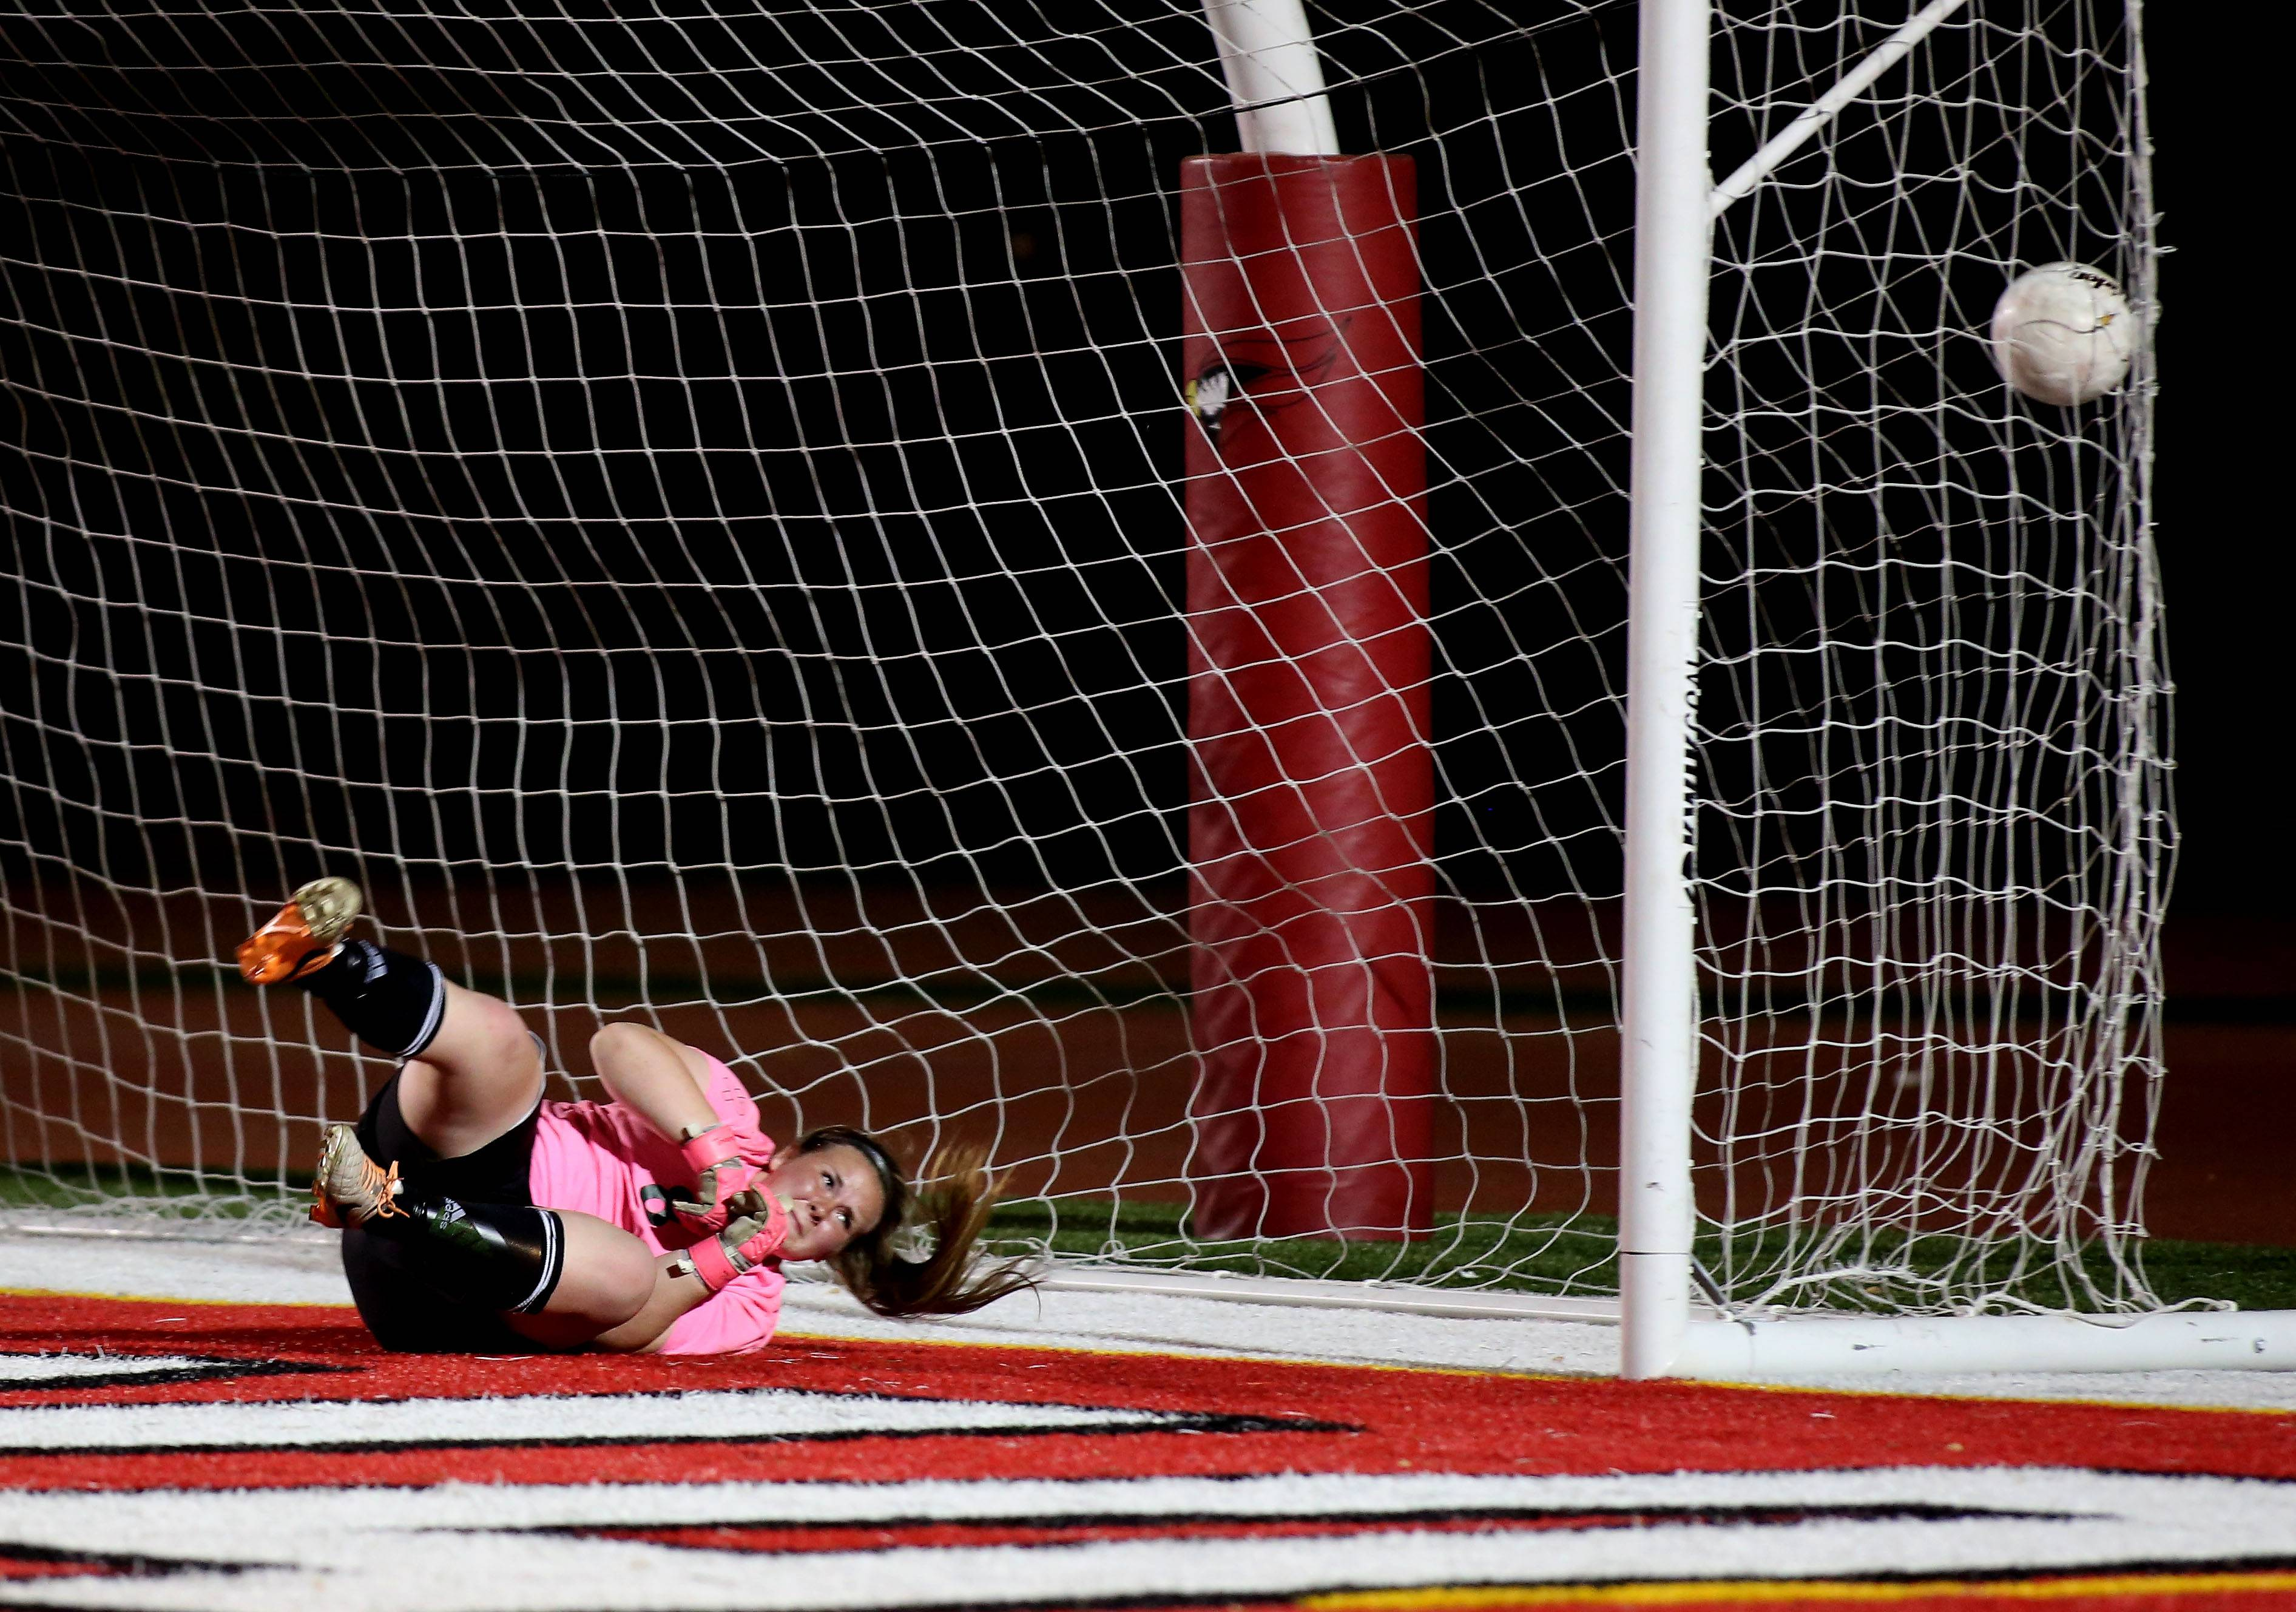 A ball gets by St. Edward goalkeeper Paige Dykstra during penalty kicks in overtime action against Manteno during the Class 1A state soccer semifinals at North Central College in Naperville on Friday.